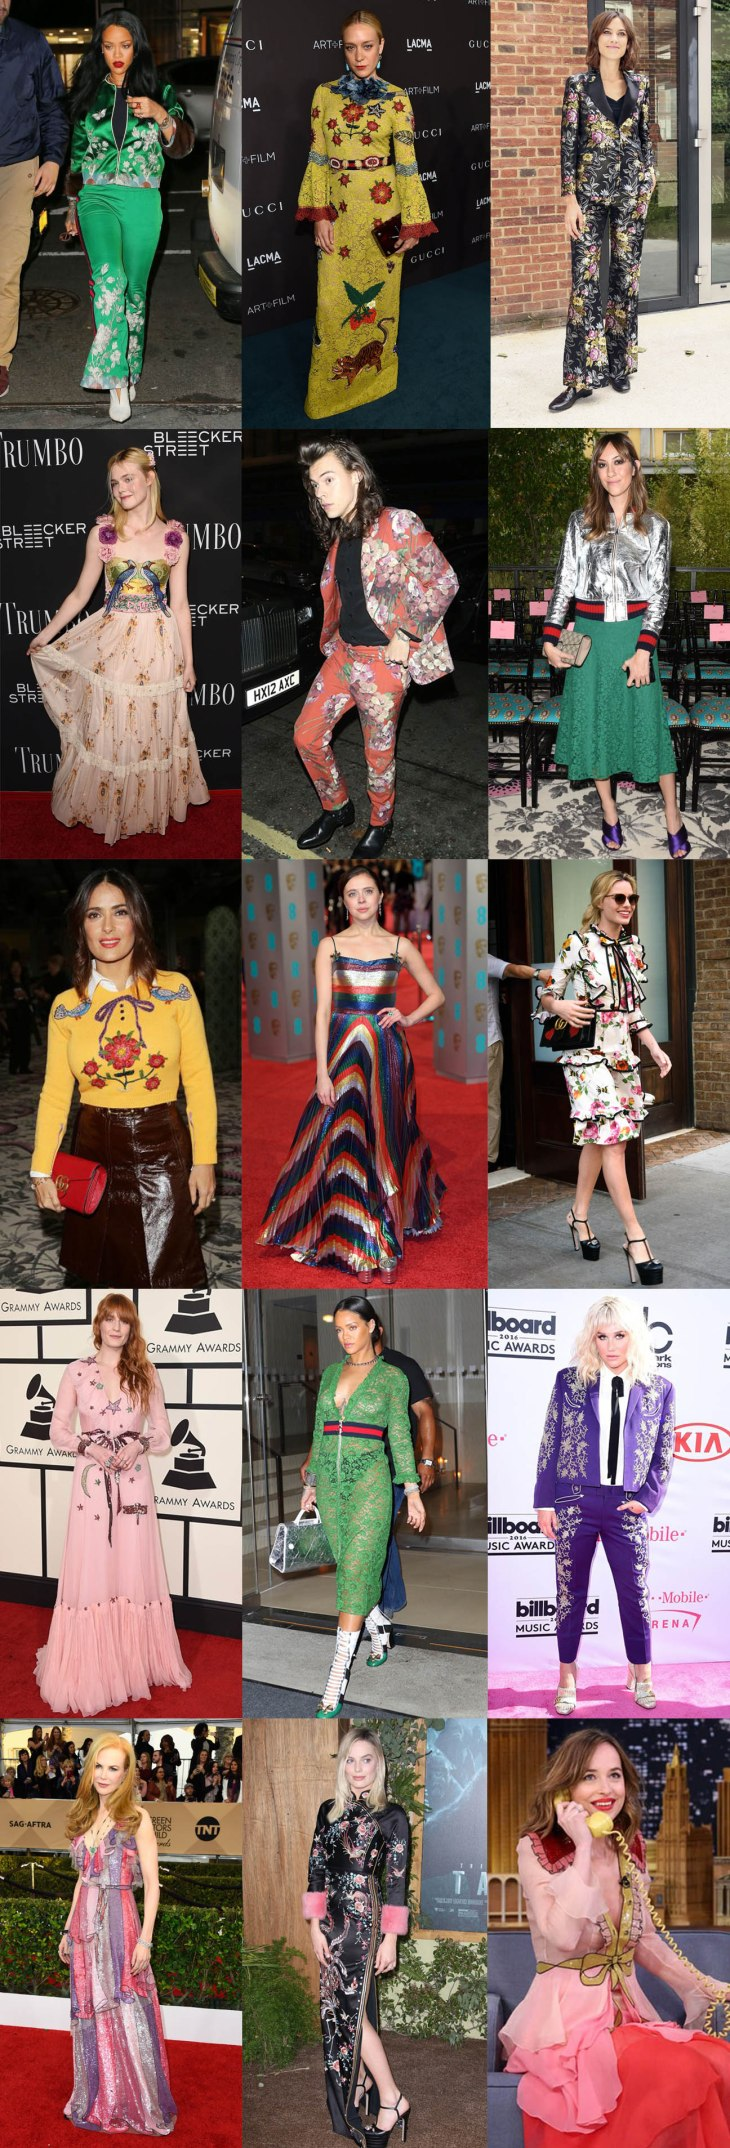 celebrities 2017 trends gucci